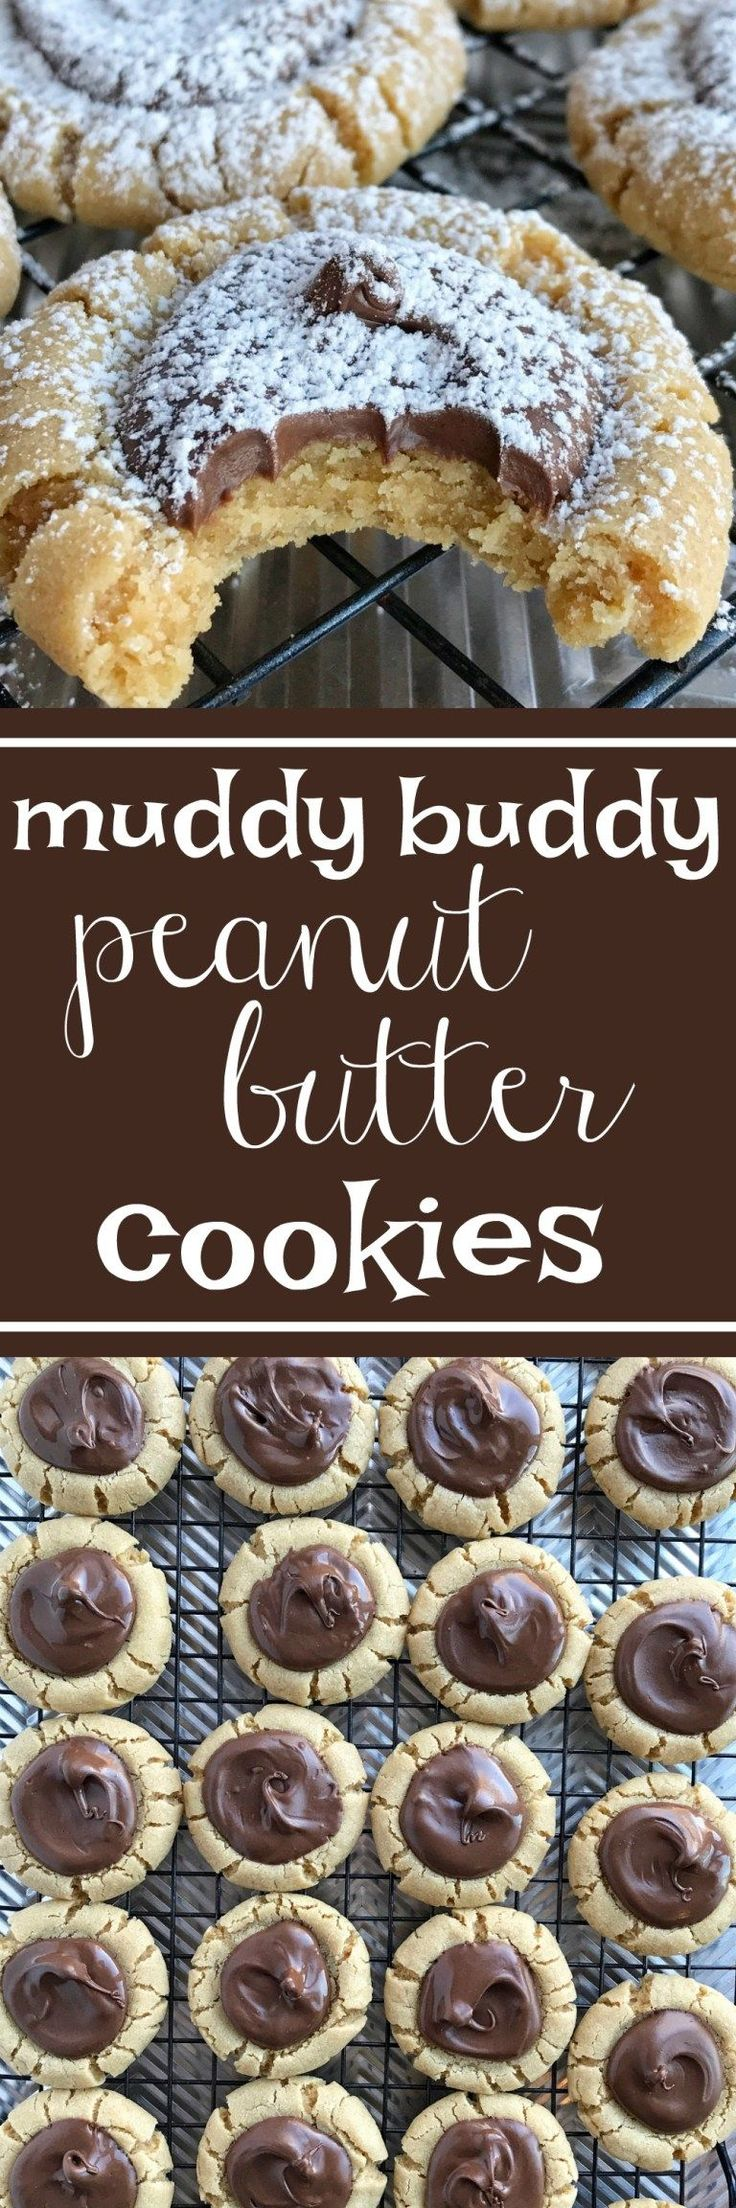 Muddy Buddy Peanut Butter Cookies | Your favorite snack made into a cookie! Muddy buddy peanut butter cookies are a soft & thick peanut butter cookie with a chocolate center, and dusted in powdered sugar. Perfect dessert or even better for a Christmas cookie plate. These may look hard but they are really very simple! www.togetherasfamily.com #christmascookies #peanutbuttercookies #peanutbutterrecipes #recipe #christmascakes